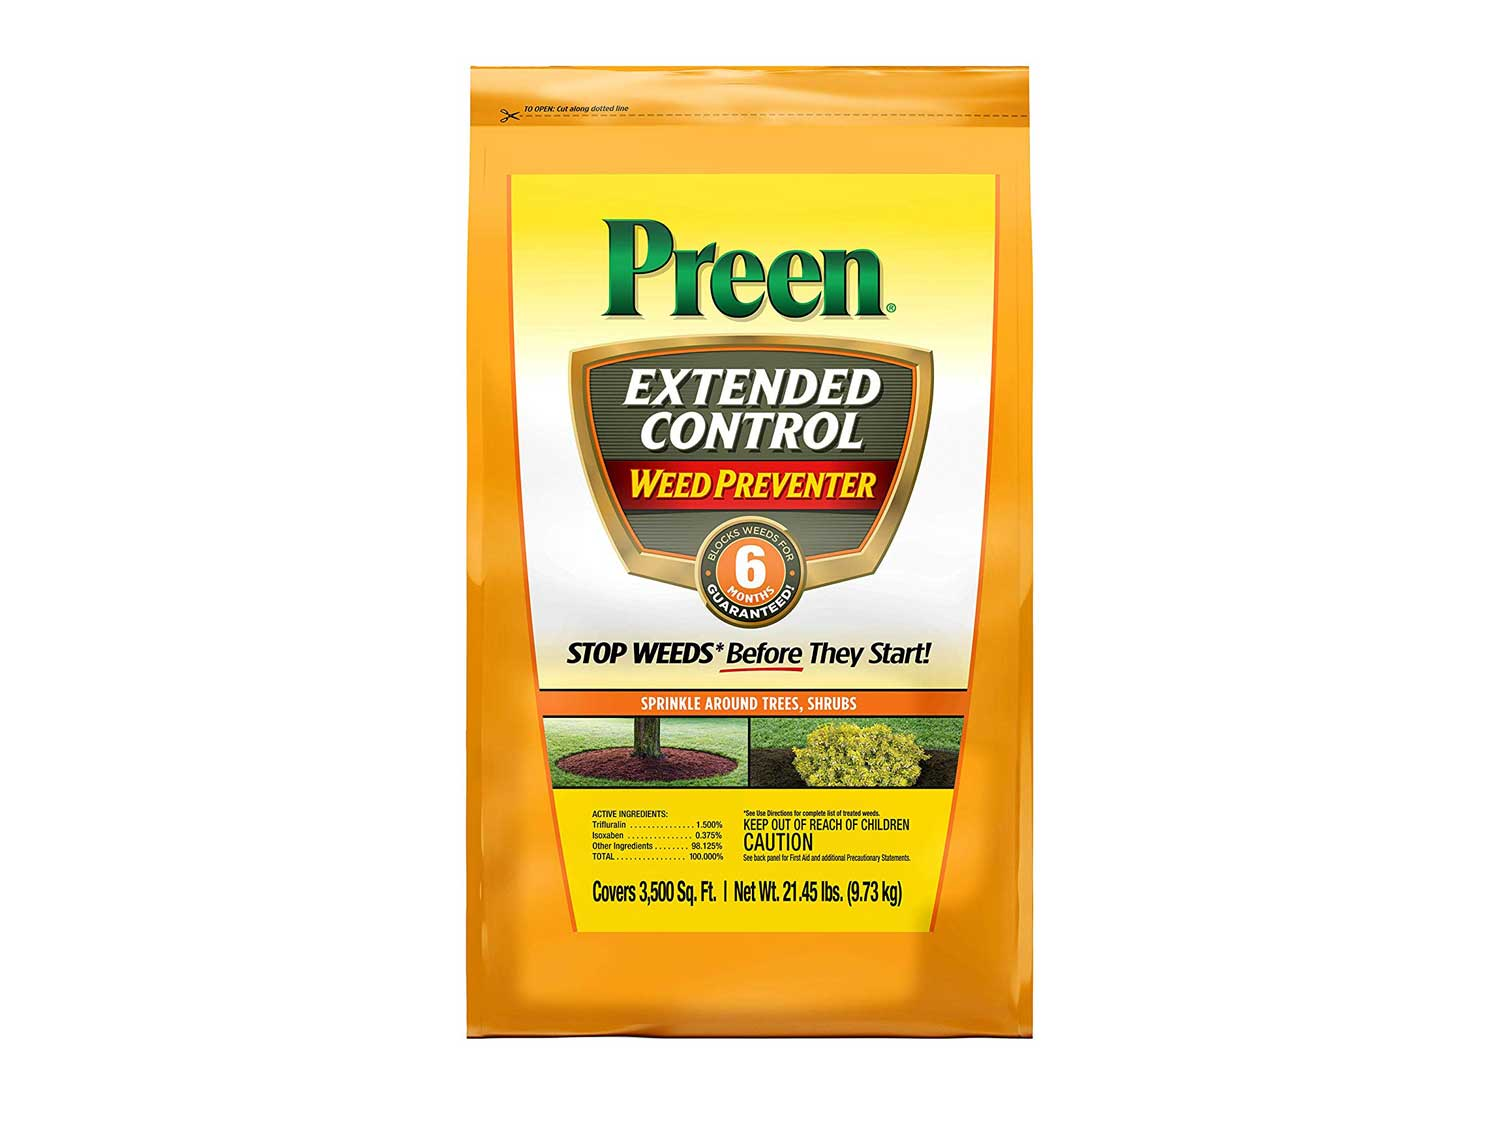 Preen 2464238 Extended Control Weed Preventer